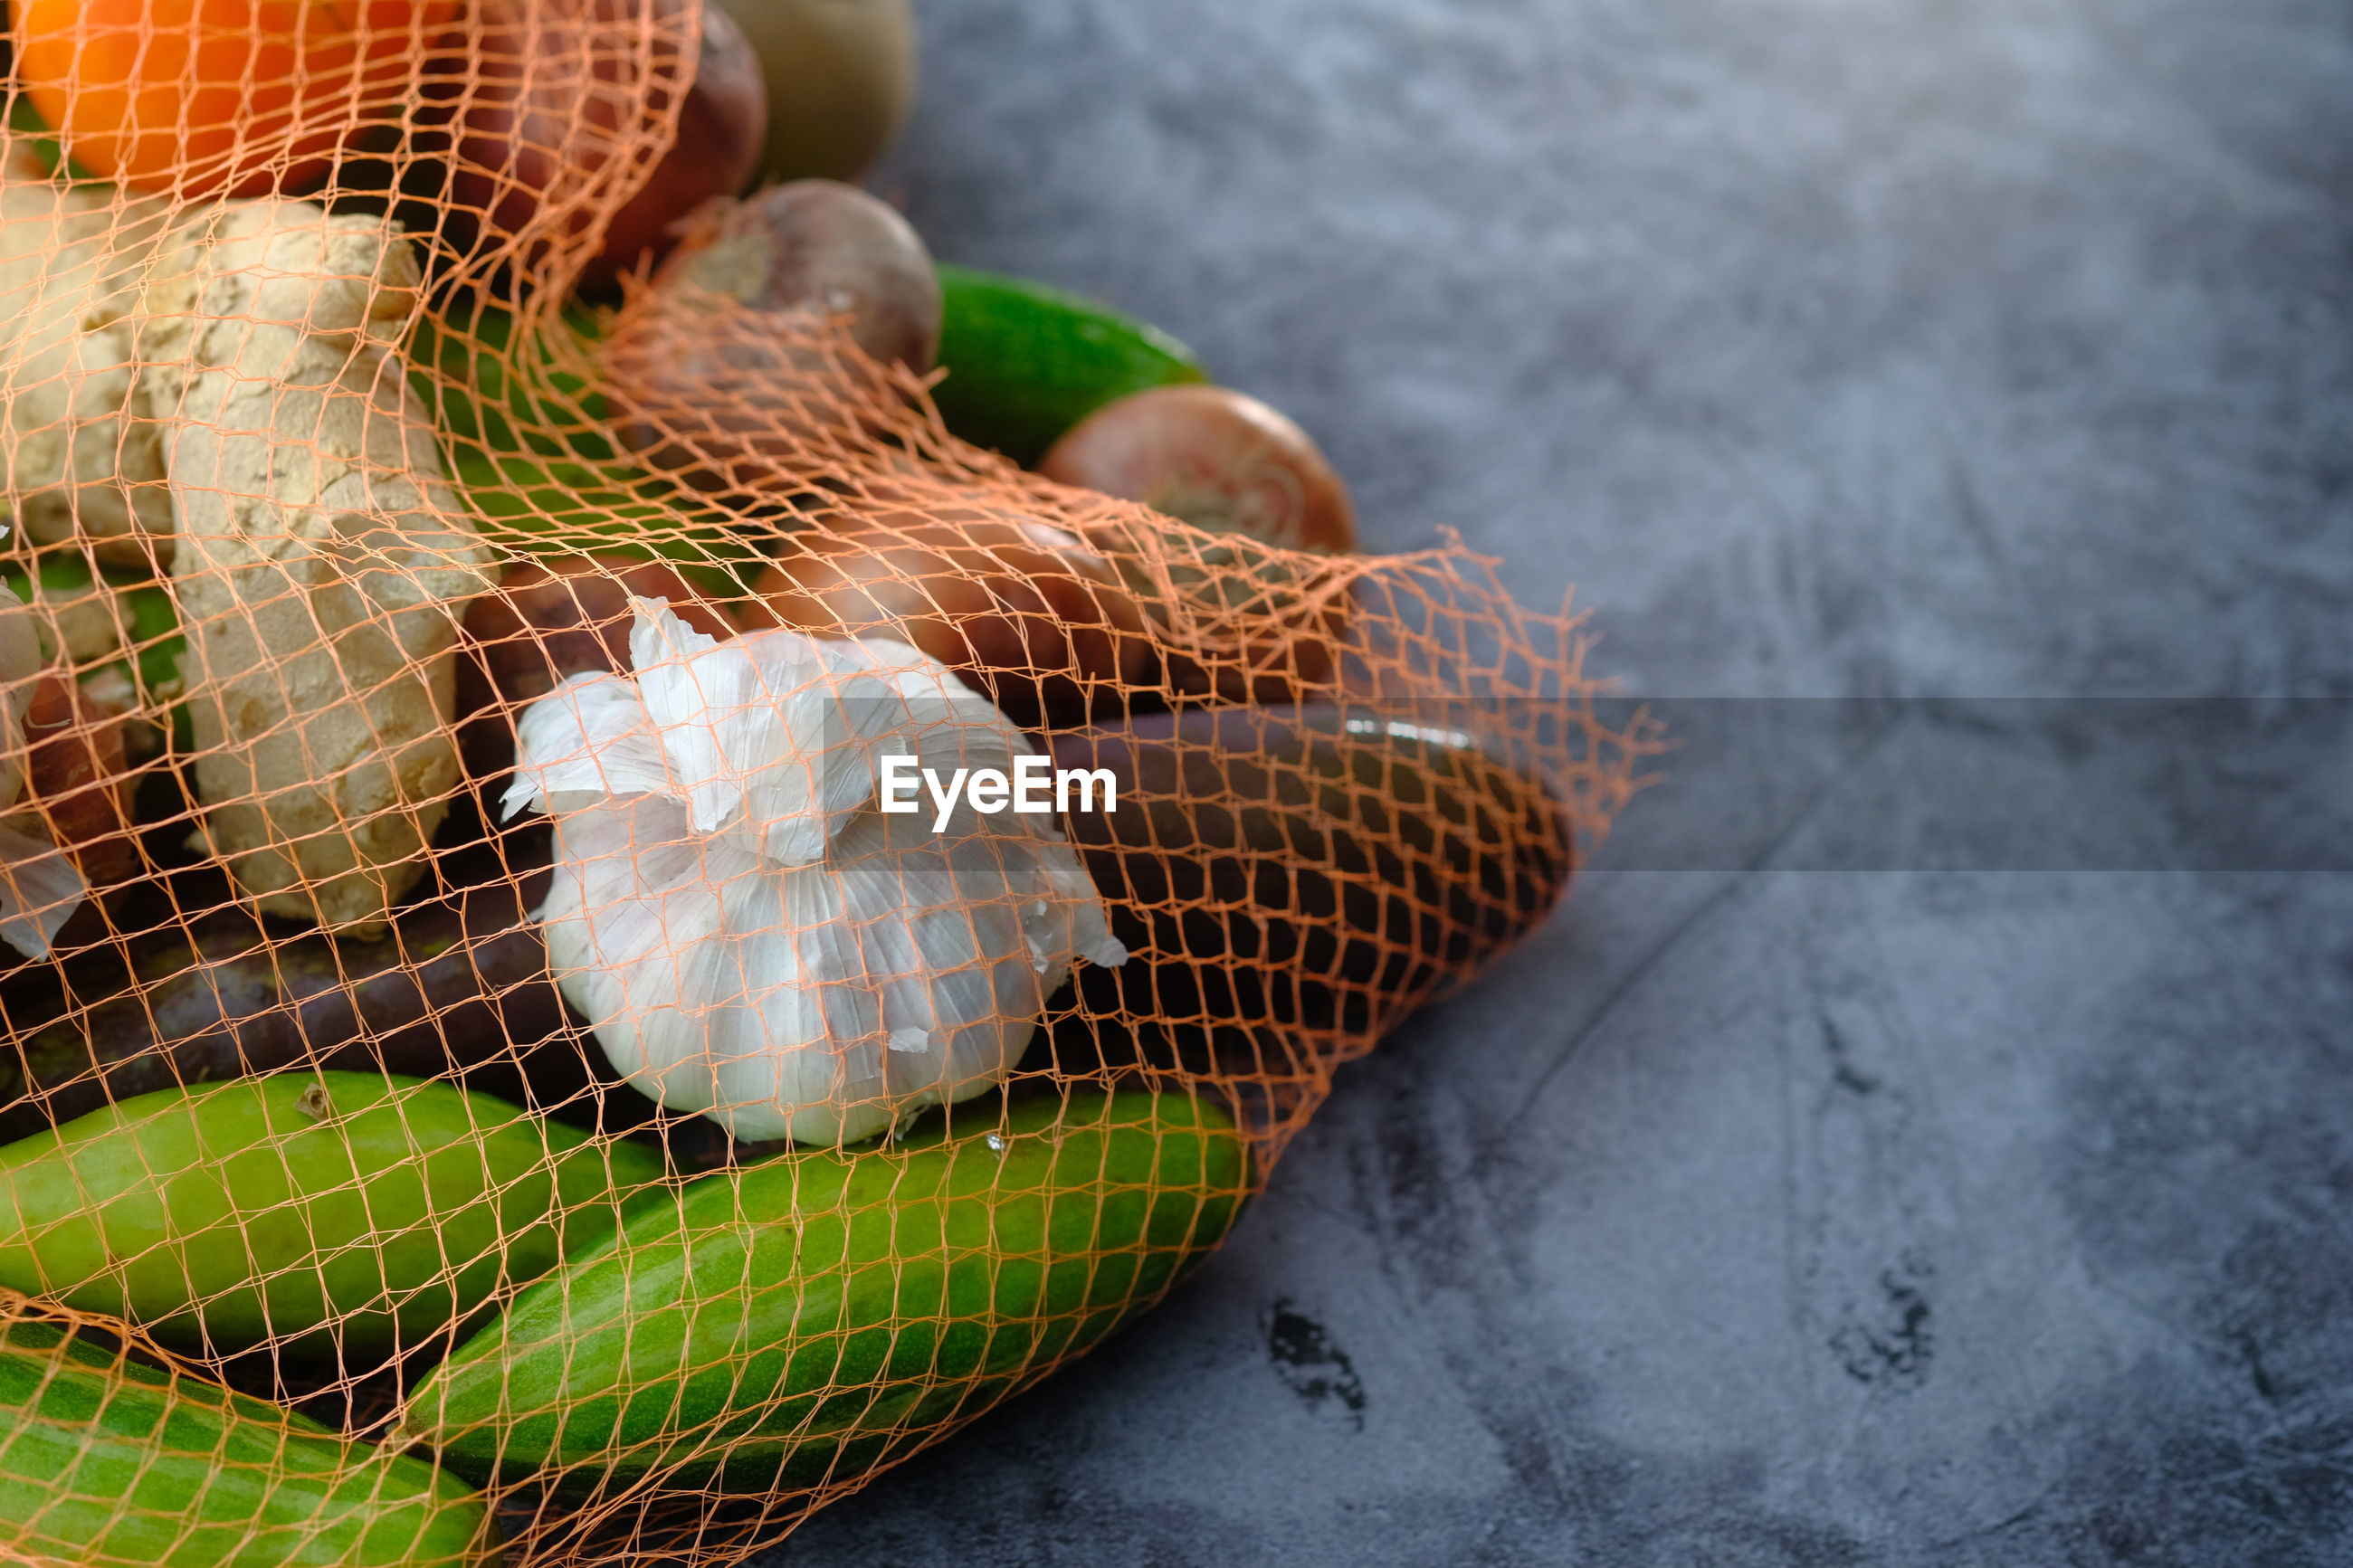 Vegetable in a shopping bag